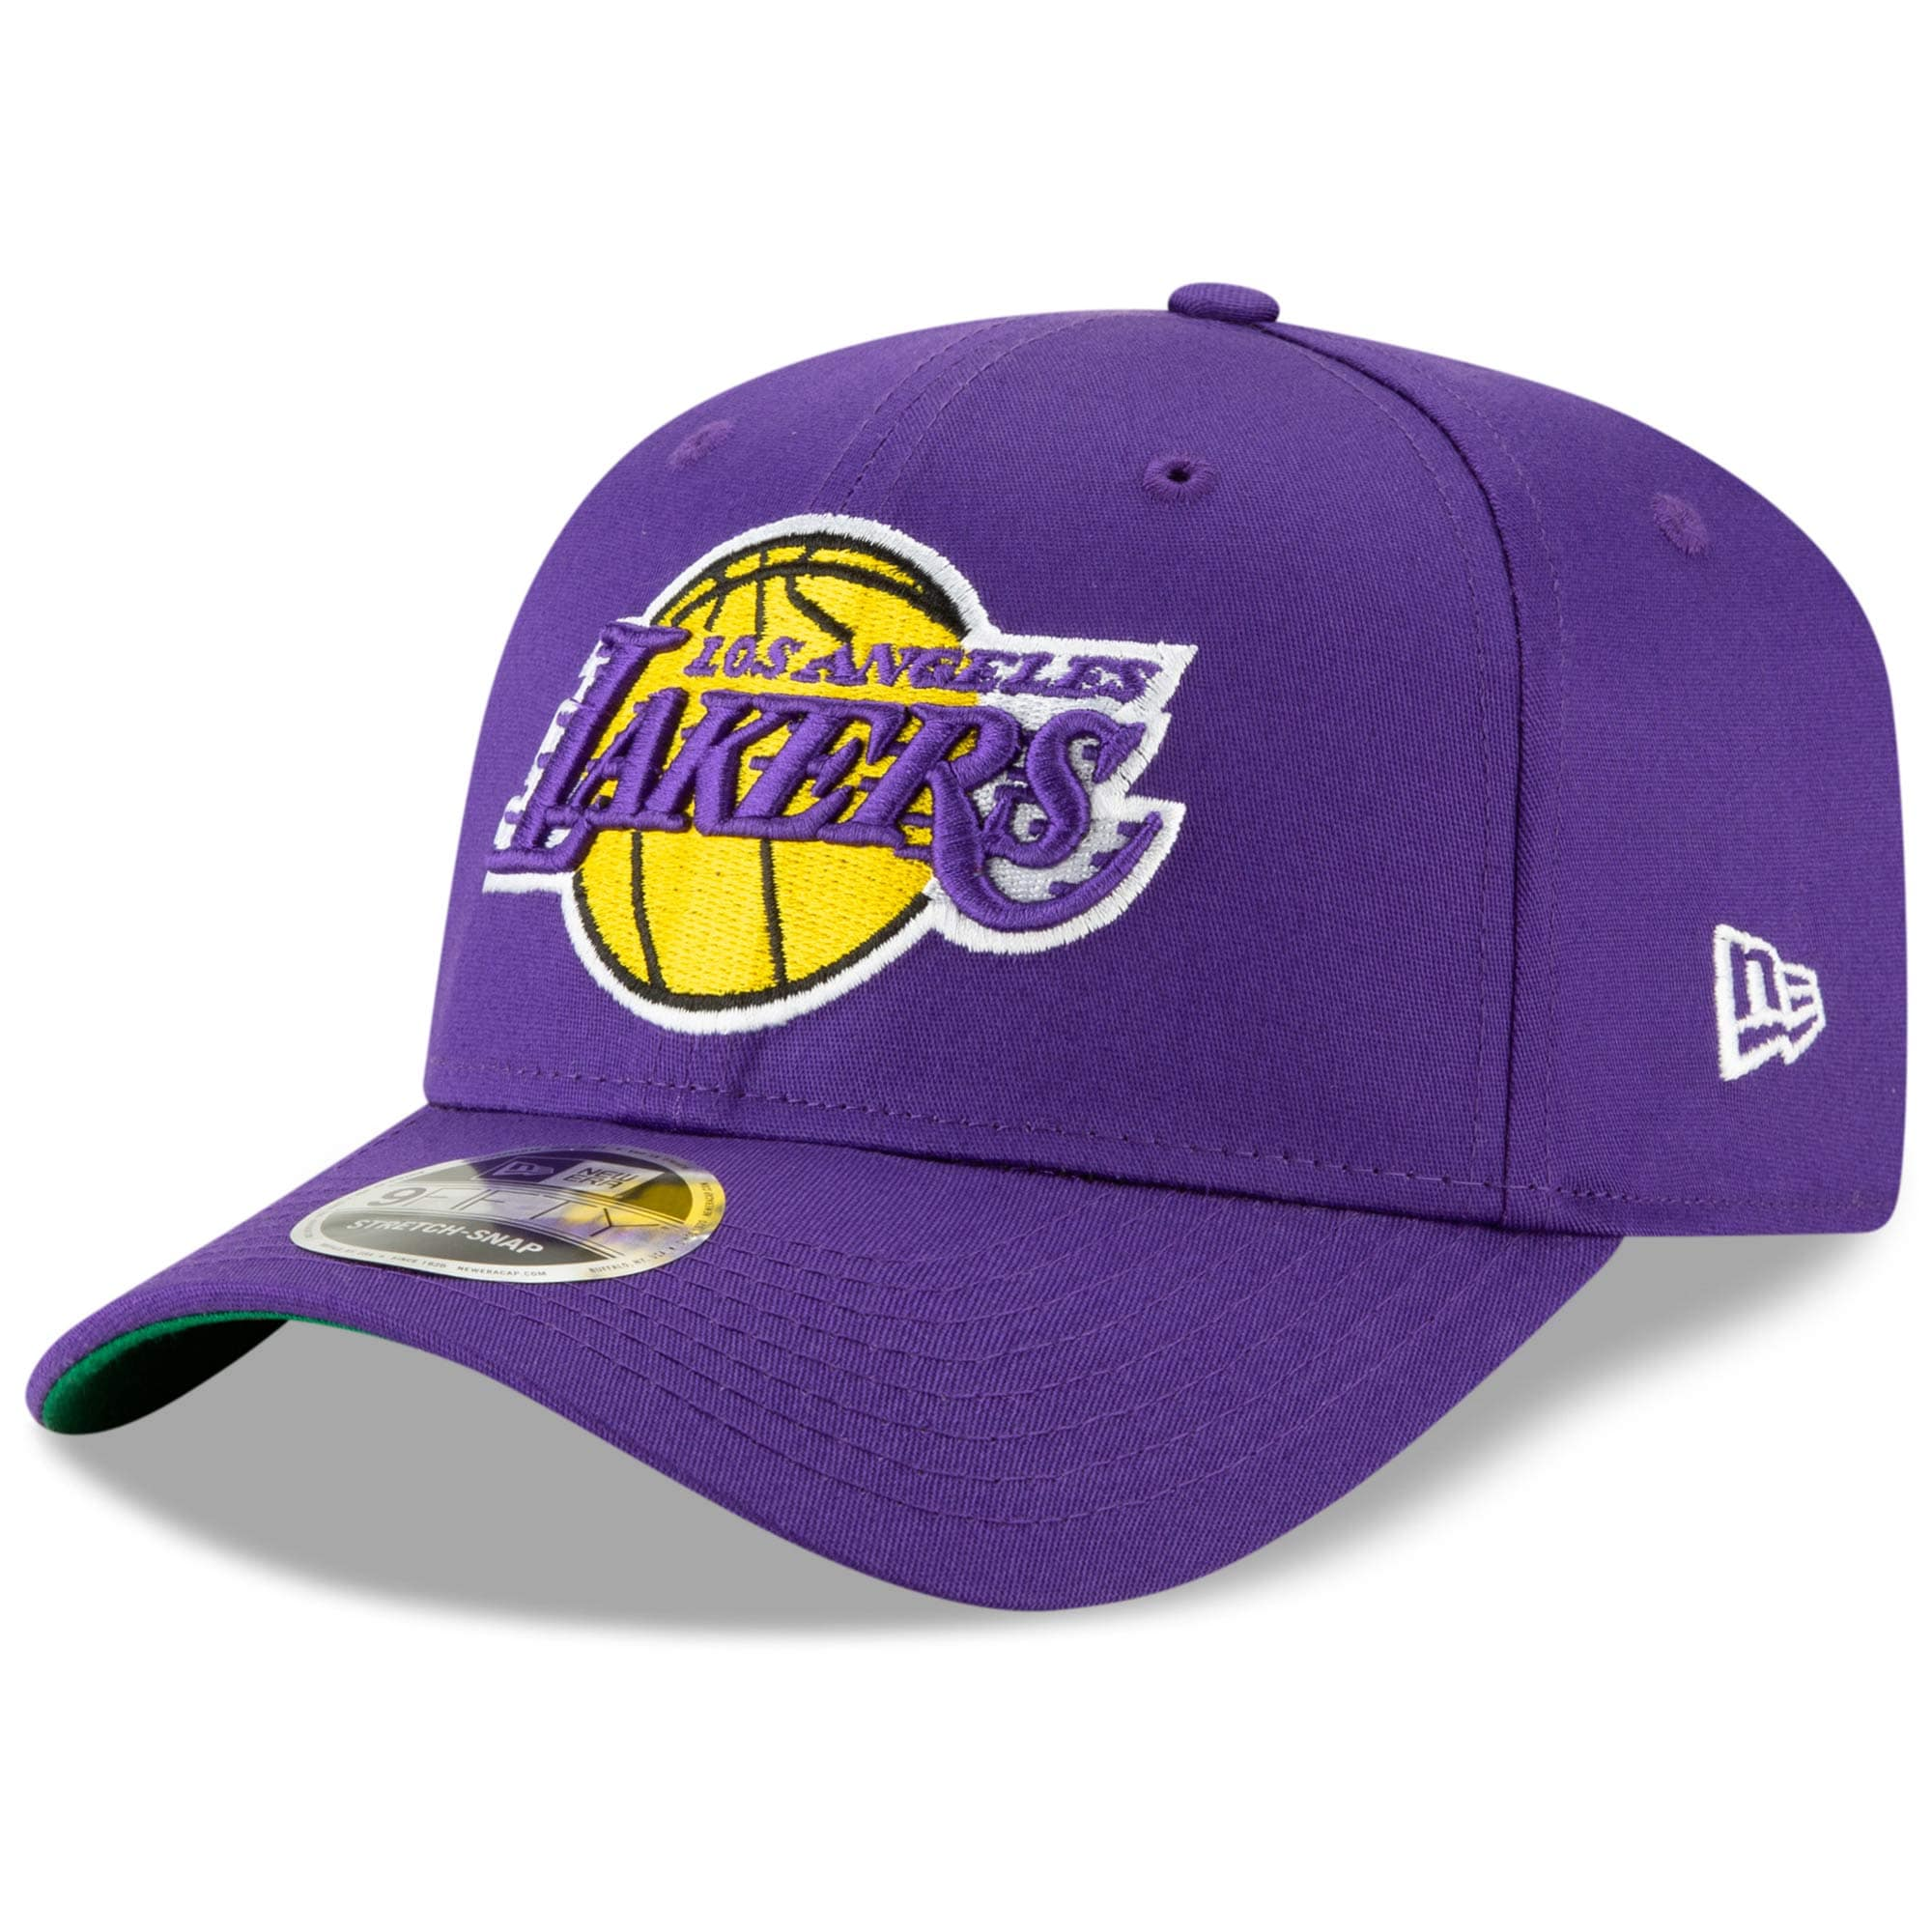 Los Angeles Lakers New Era Team Stretch 9FIFTY Adjustable Snapback Hat - Purple